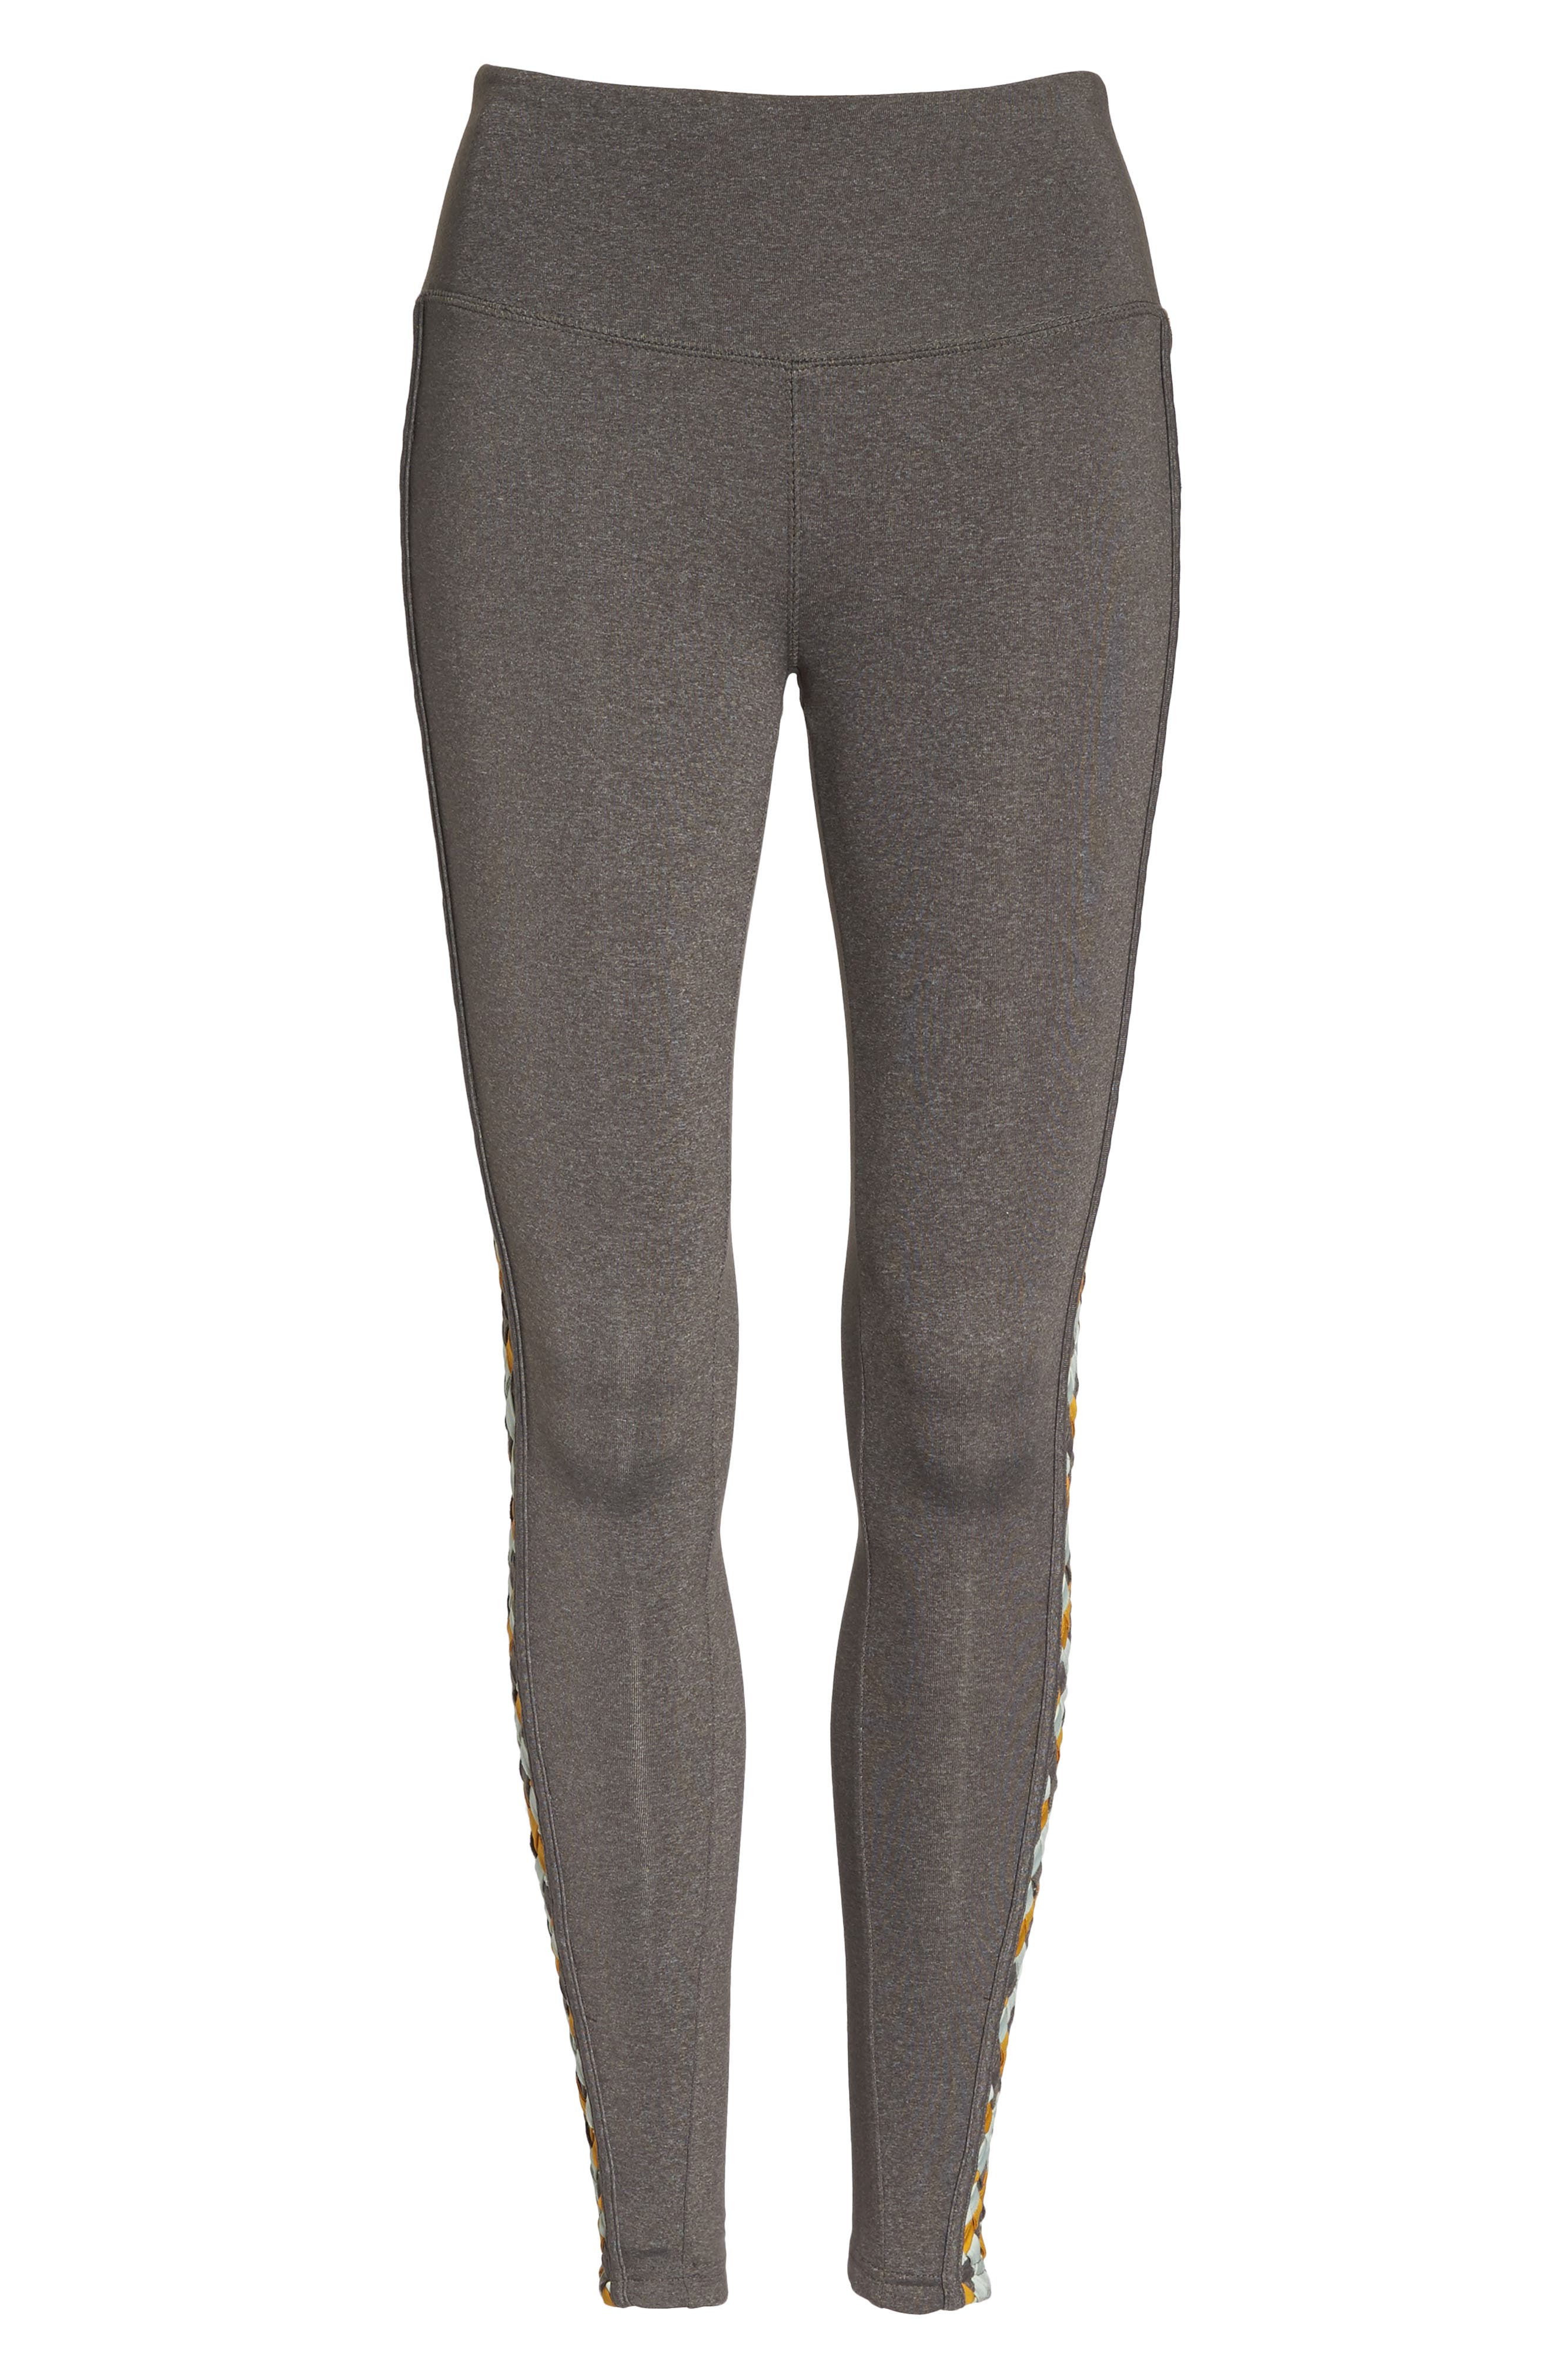 Free People Vision Leggings,                             Alternate thumbnail 7, color,                             Light Grey